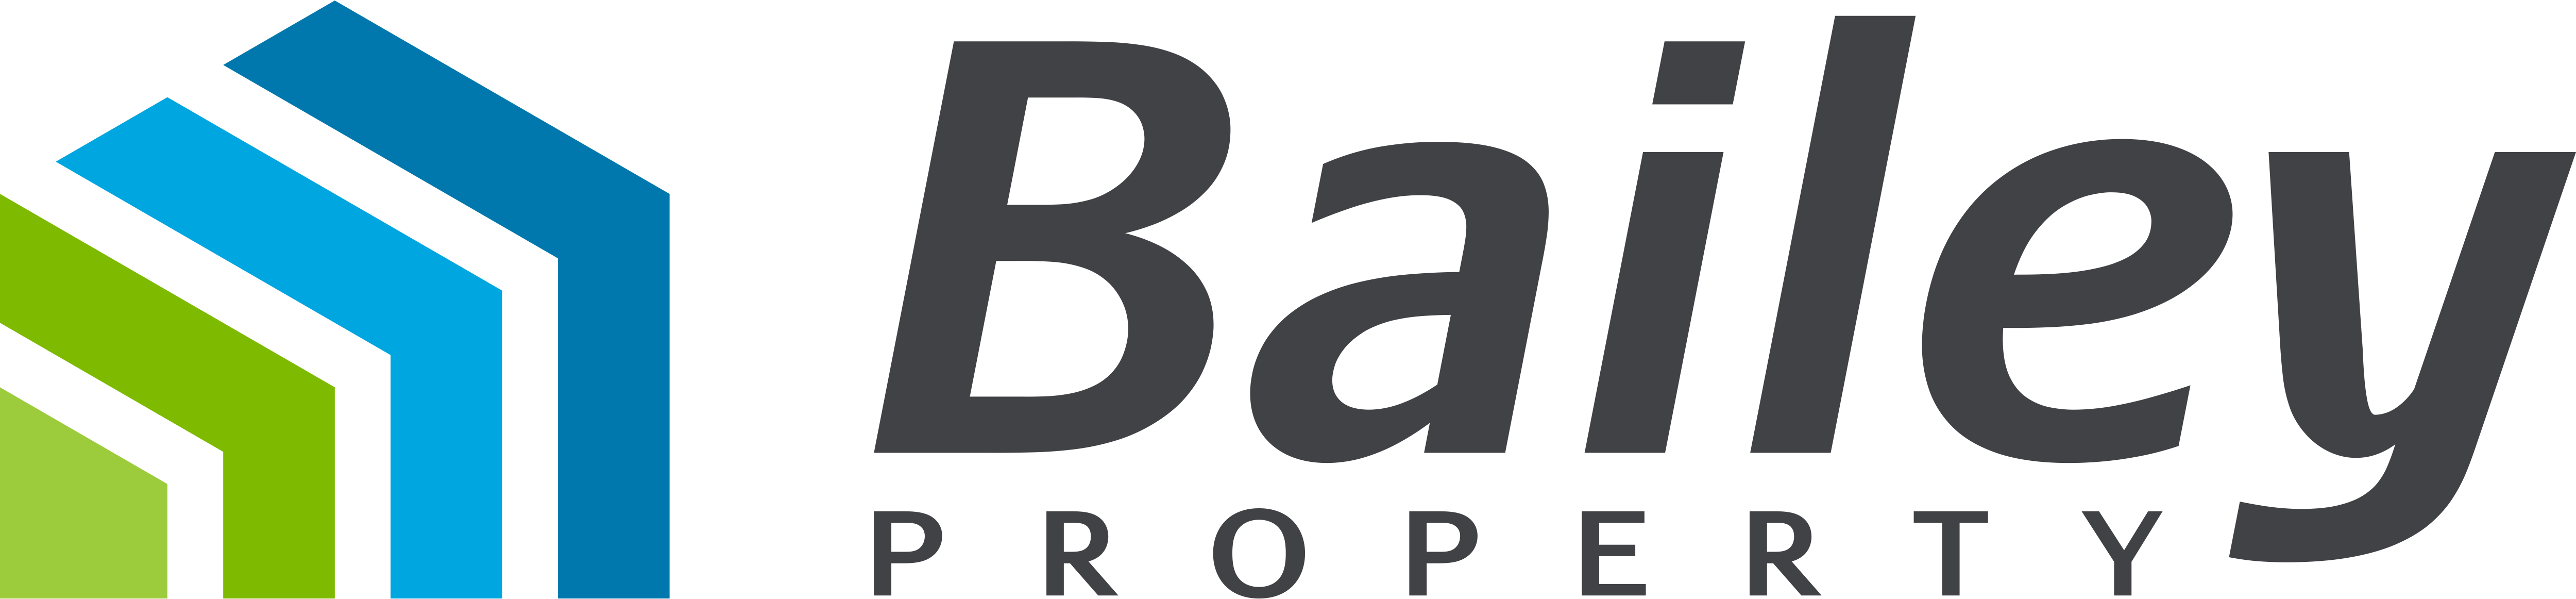 Bailey Property Management - logo